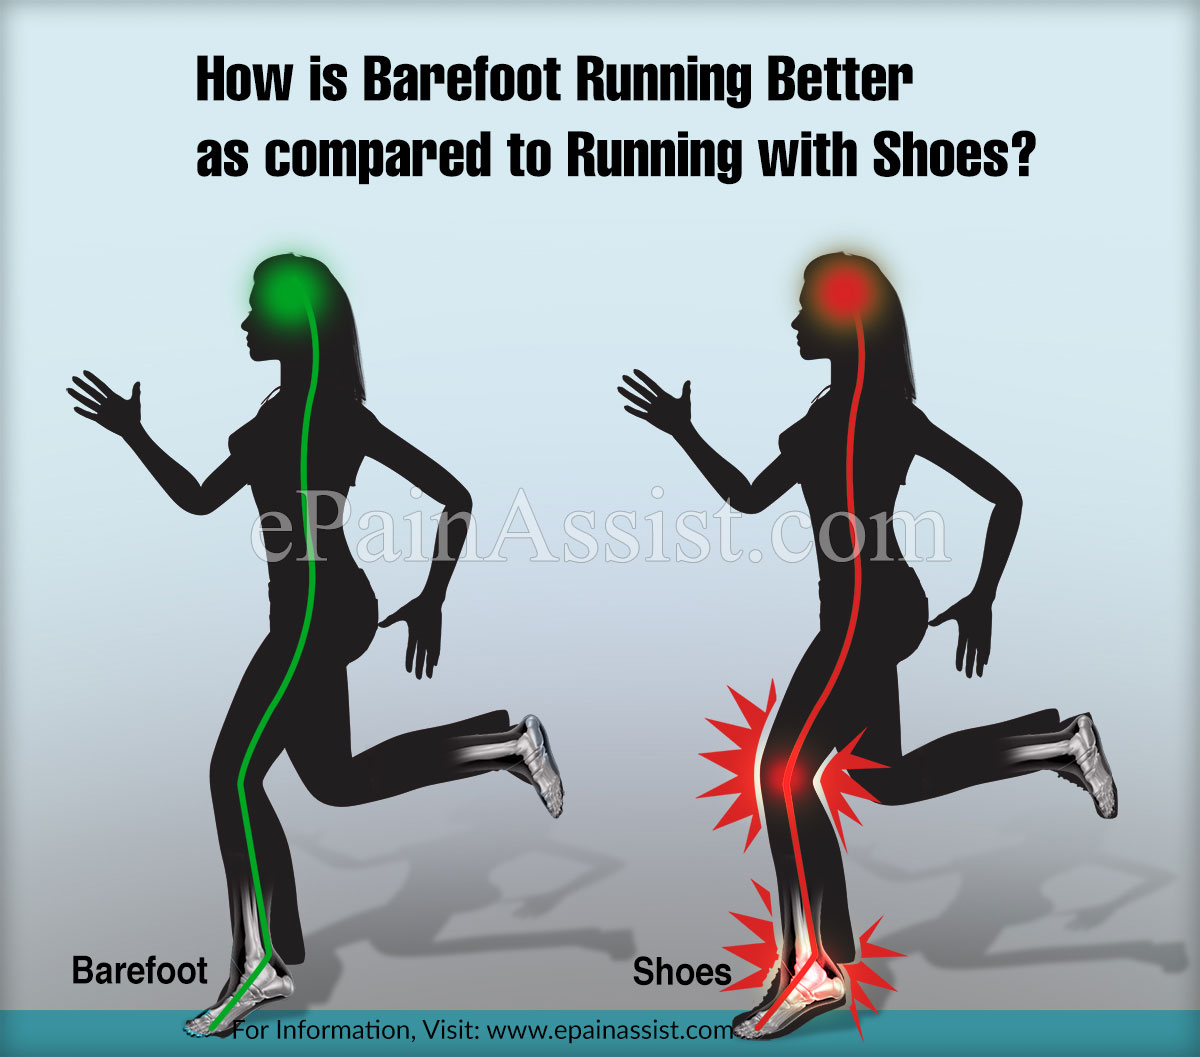 How is Barefoot Running Better as compared to Running with Shoes?